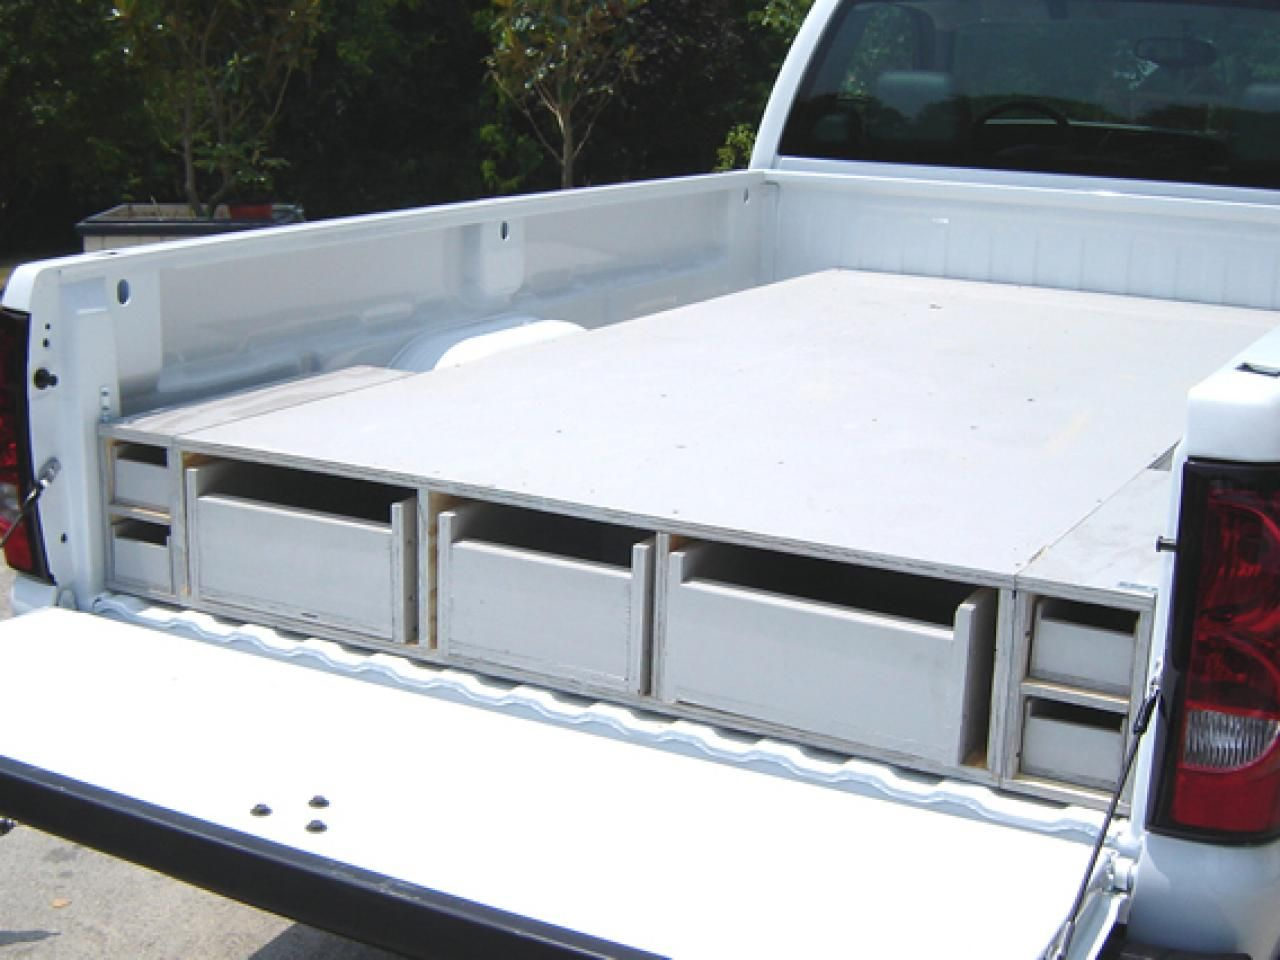 Diynetwork Experts Offer Instructions On How To Build And Install A Custom Storage System In Truck Bed